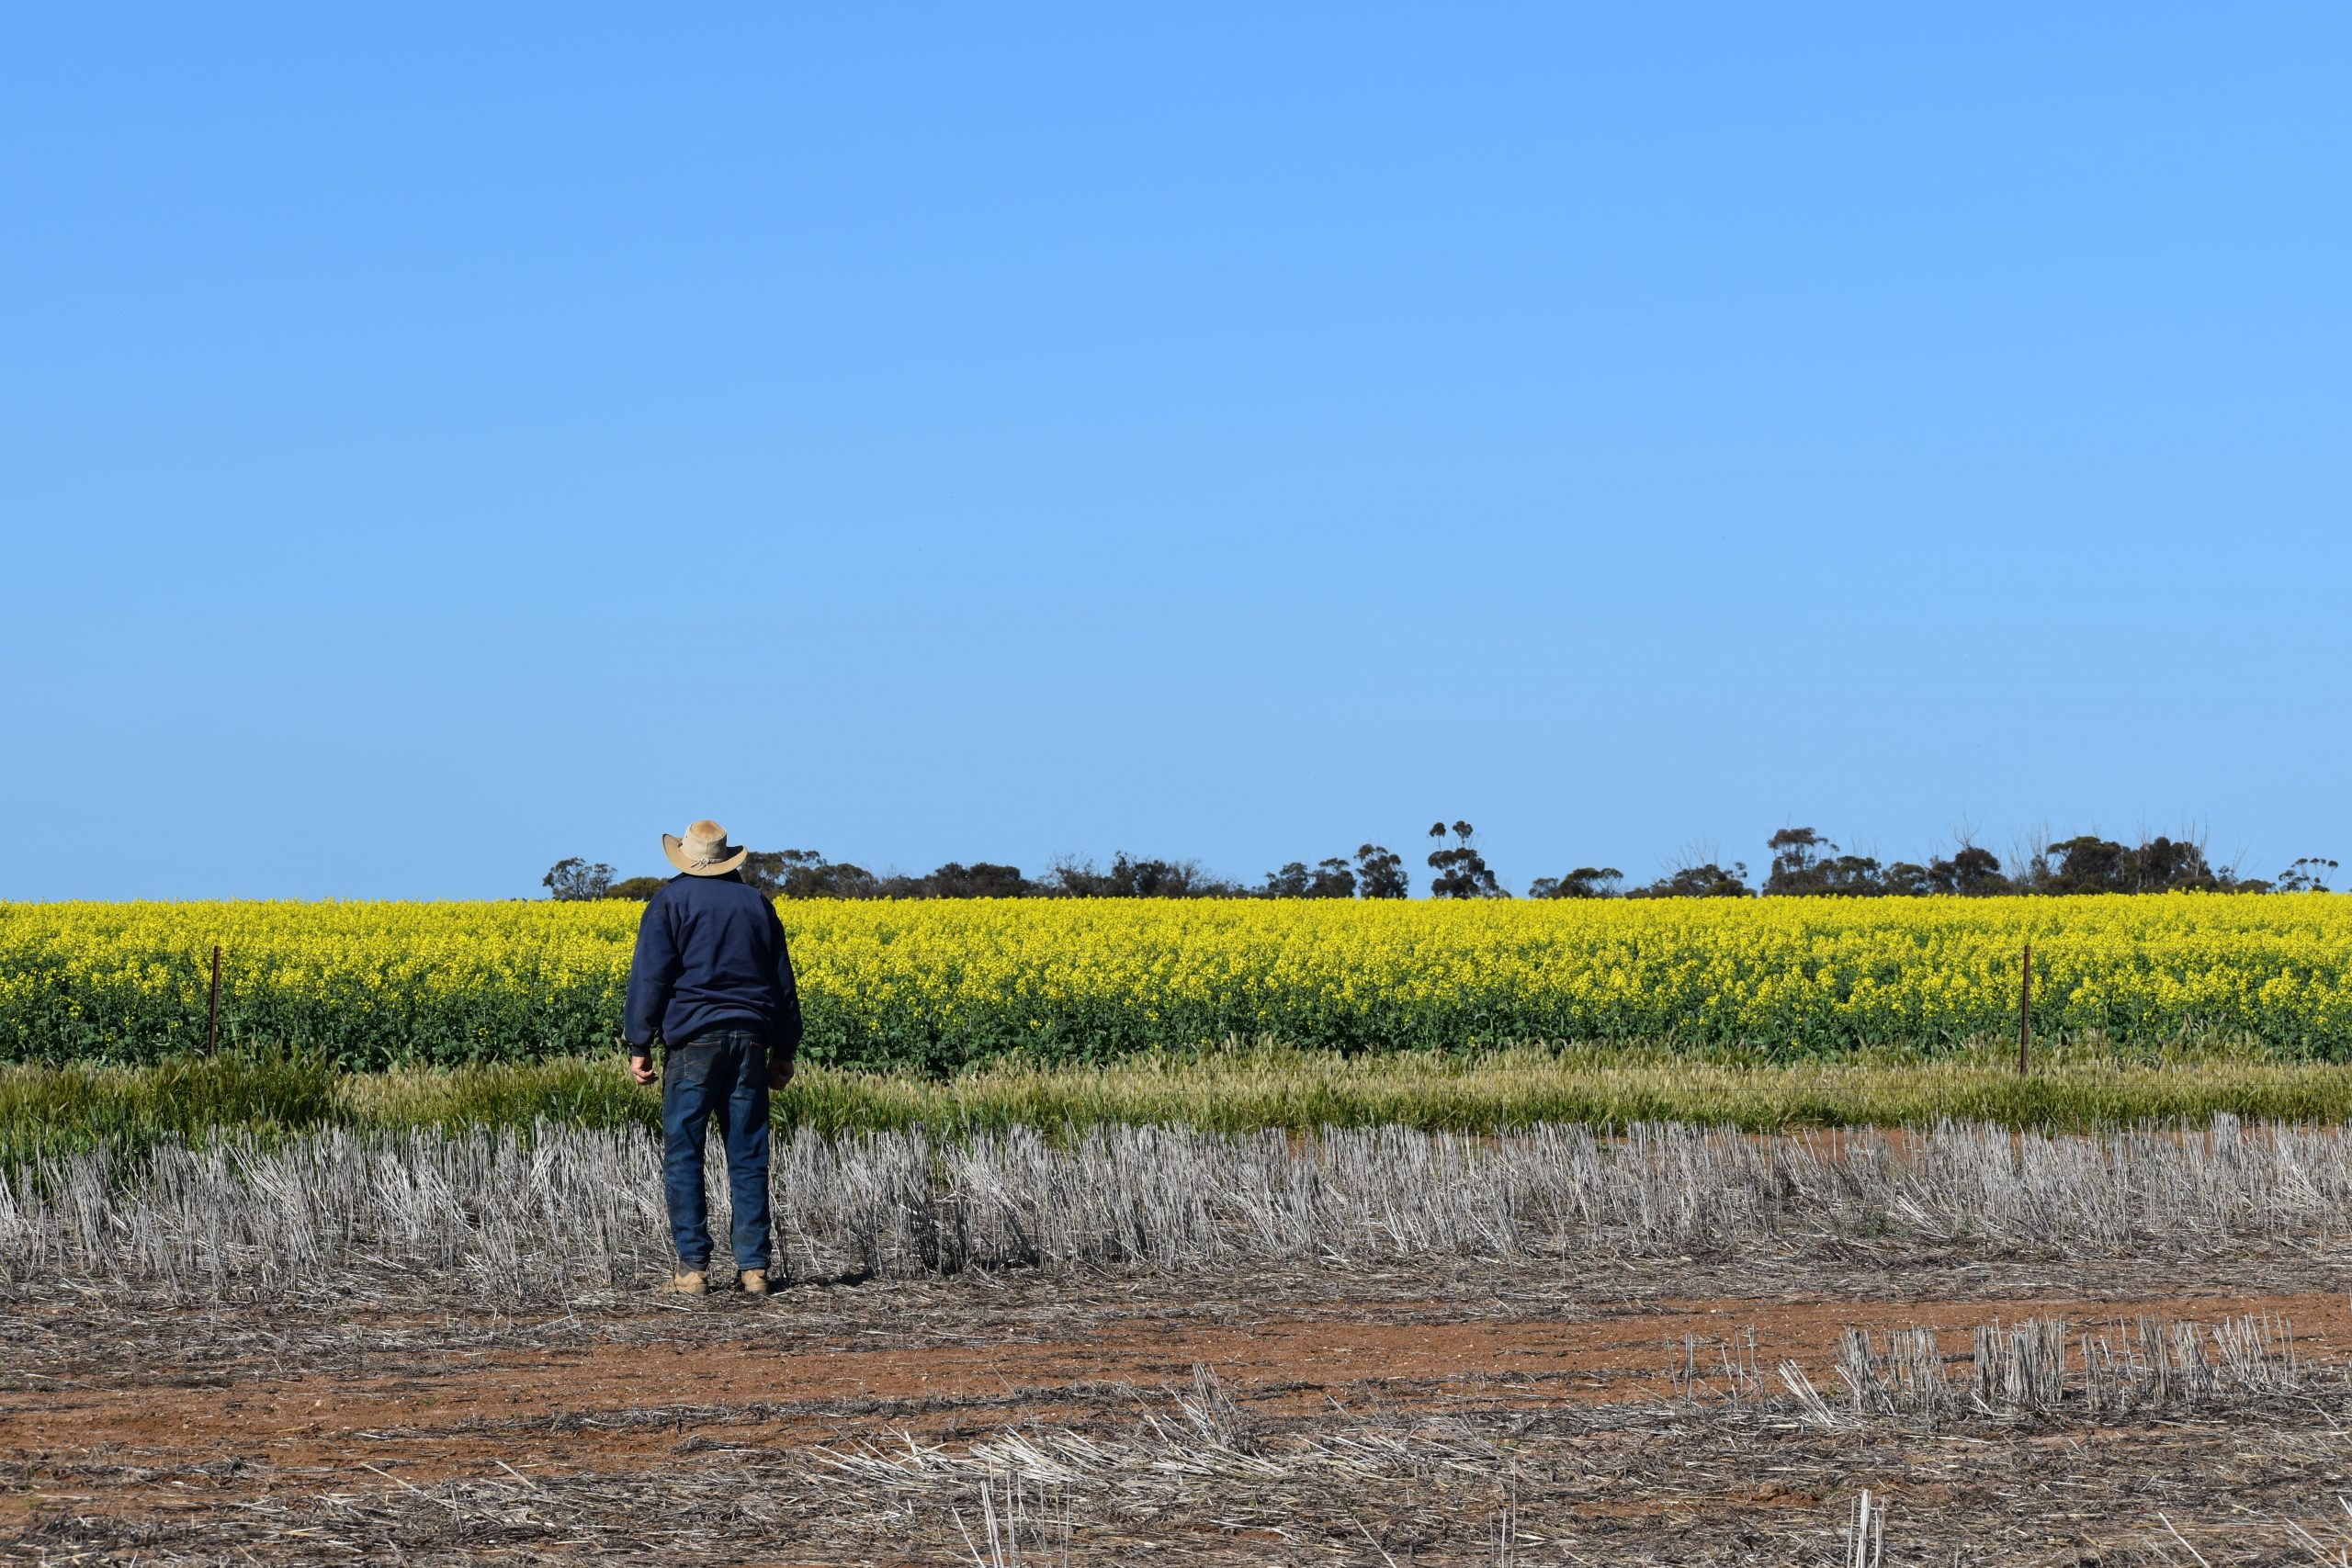 Australian farmers hurt while the gas industry profits